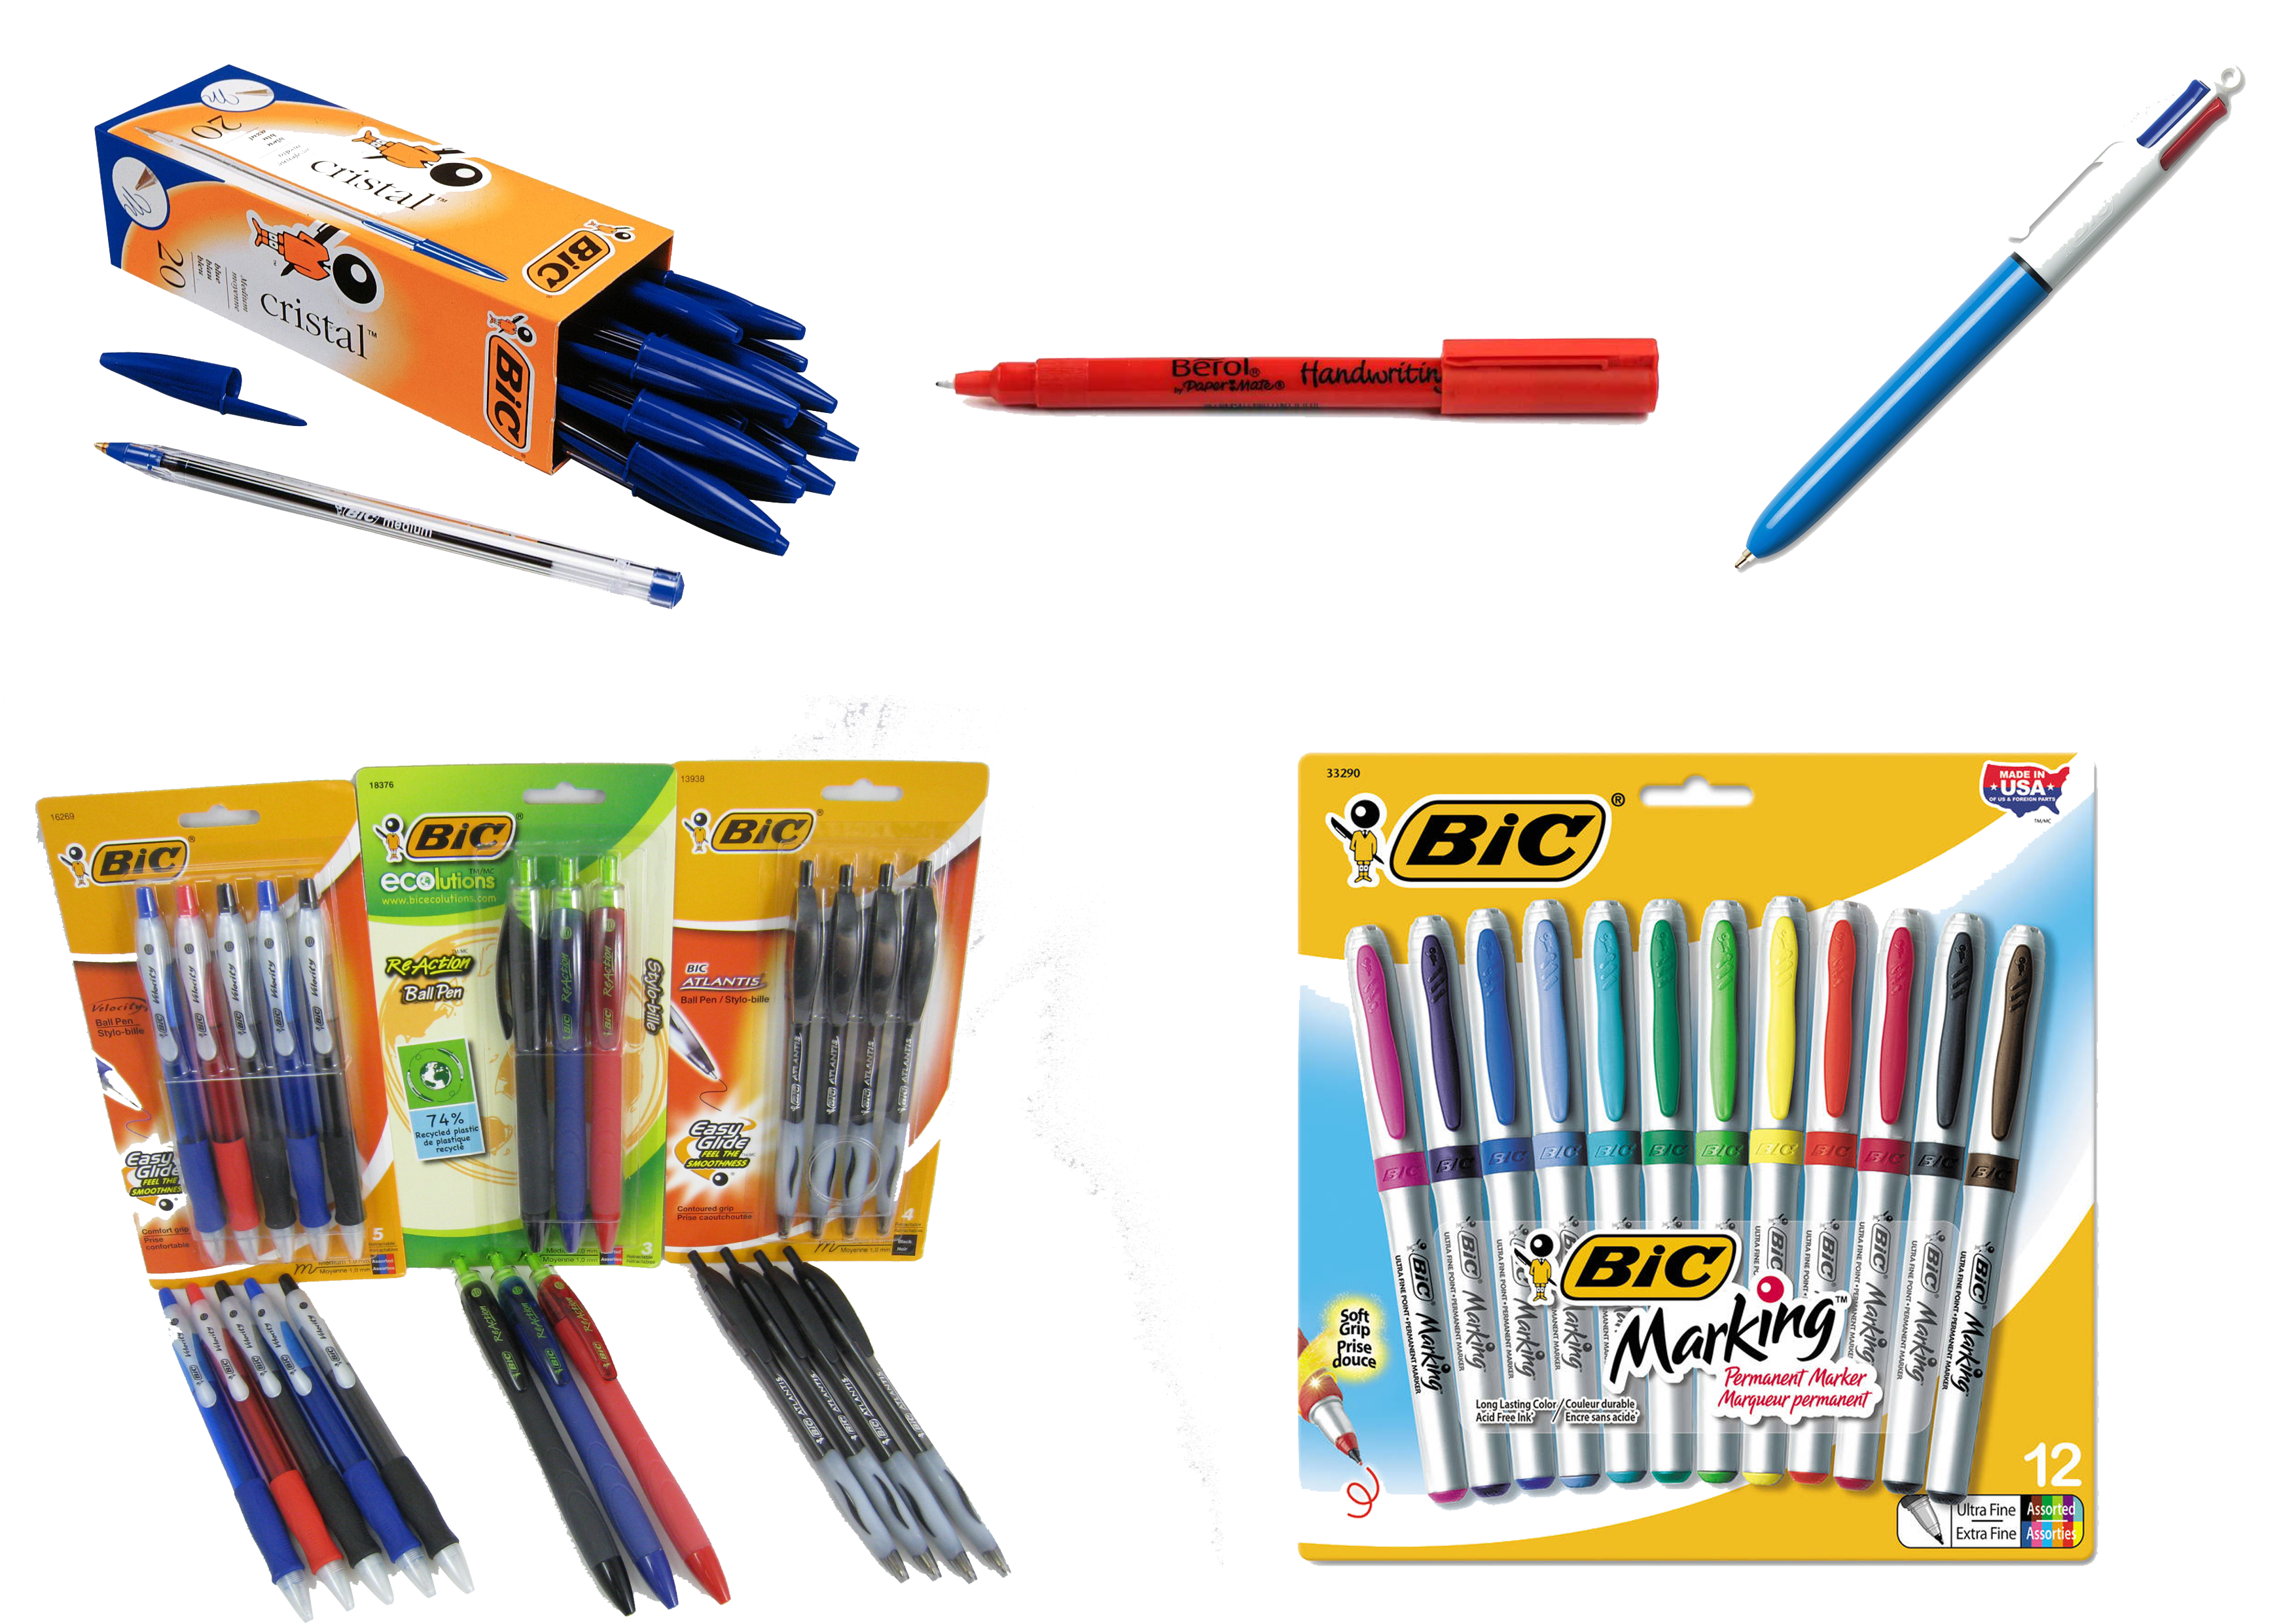 bic-page